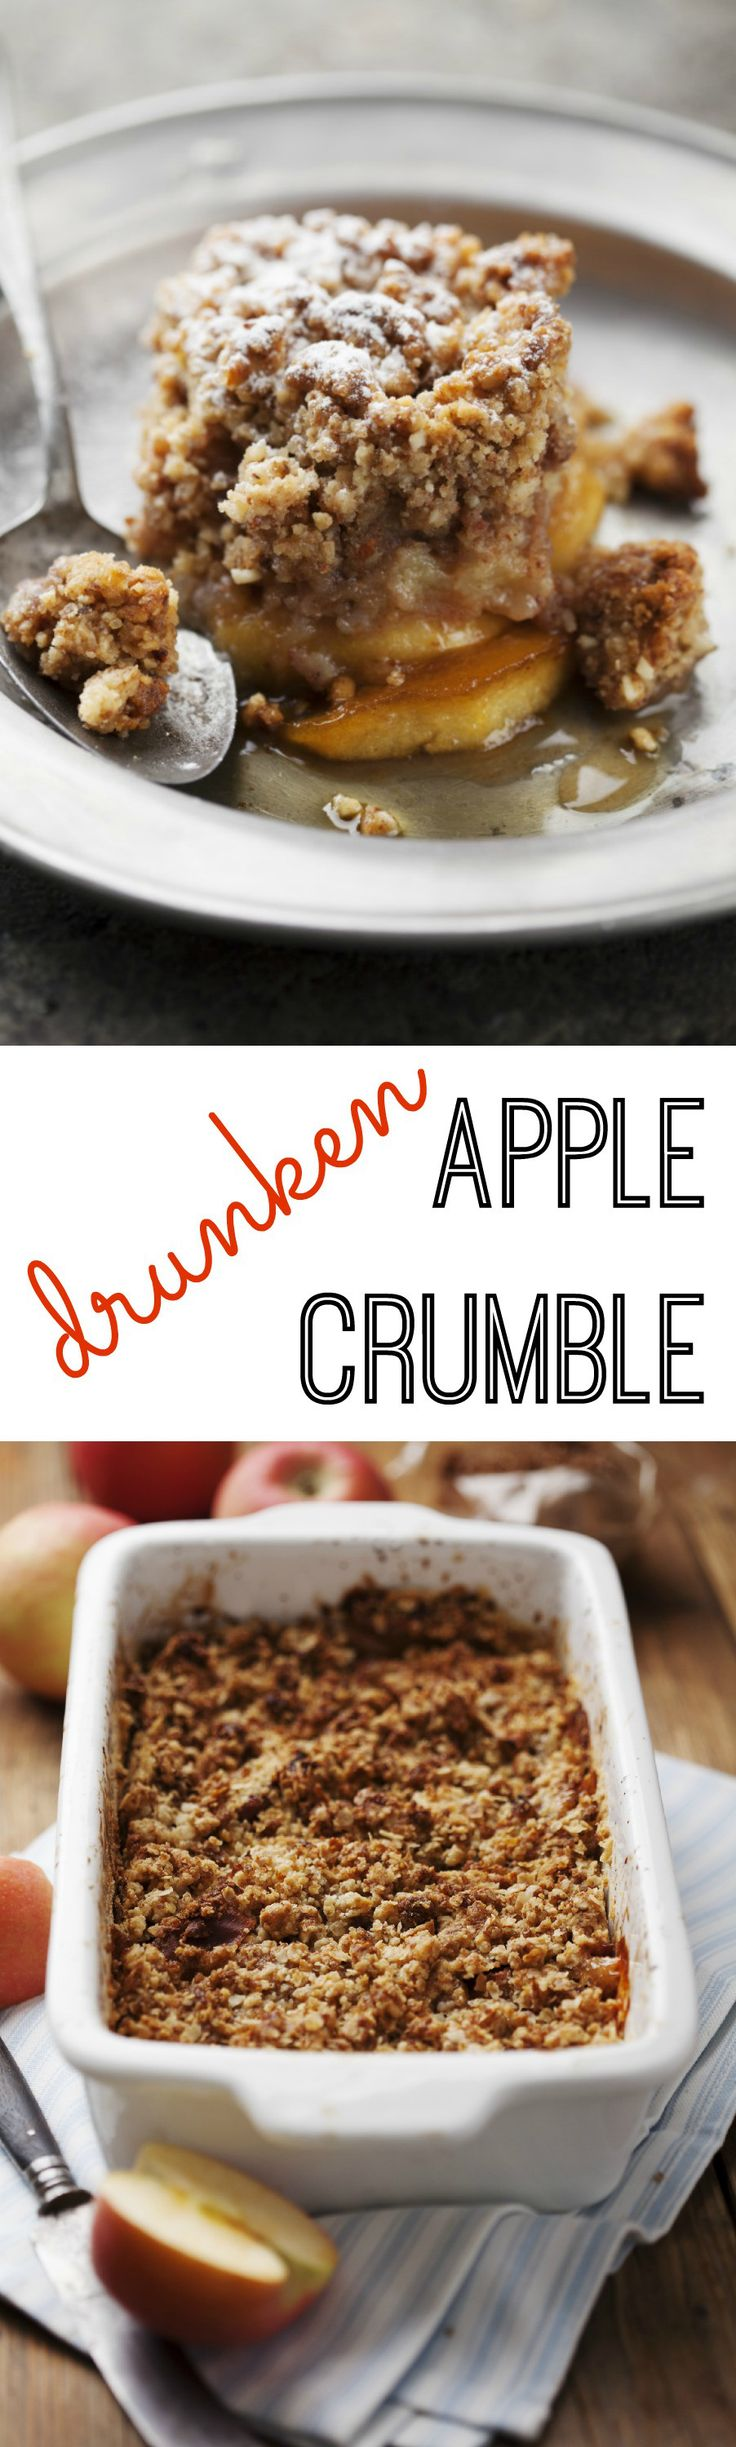 Drunken apple crumble made with a hint of amaretto is a simple crowd pleasing recipe.